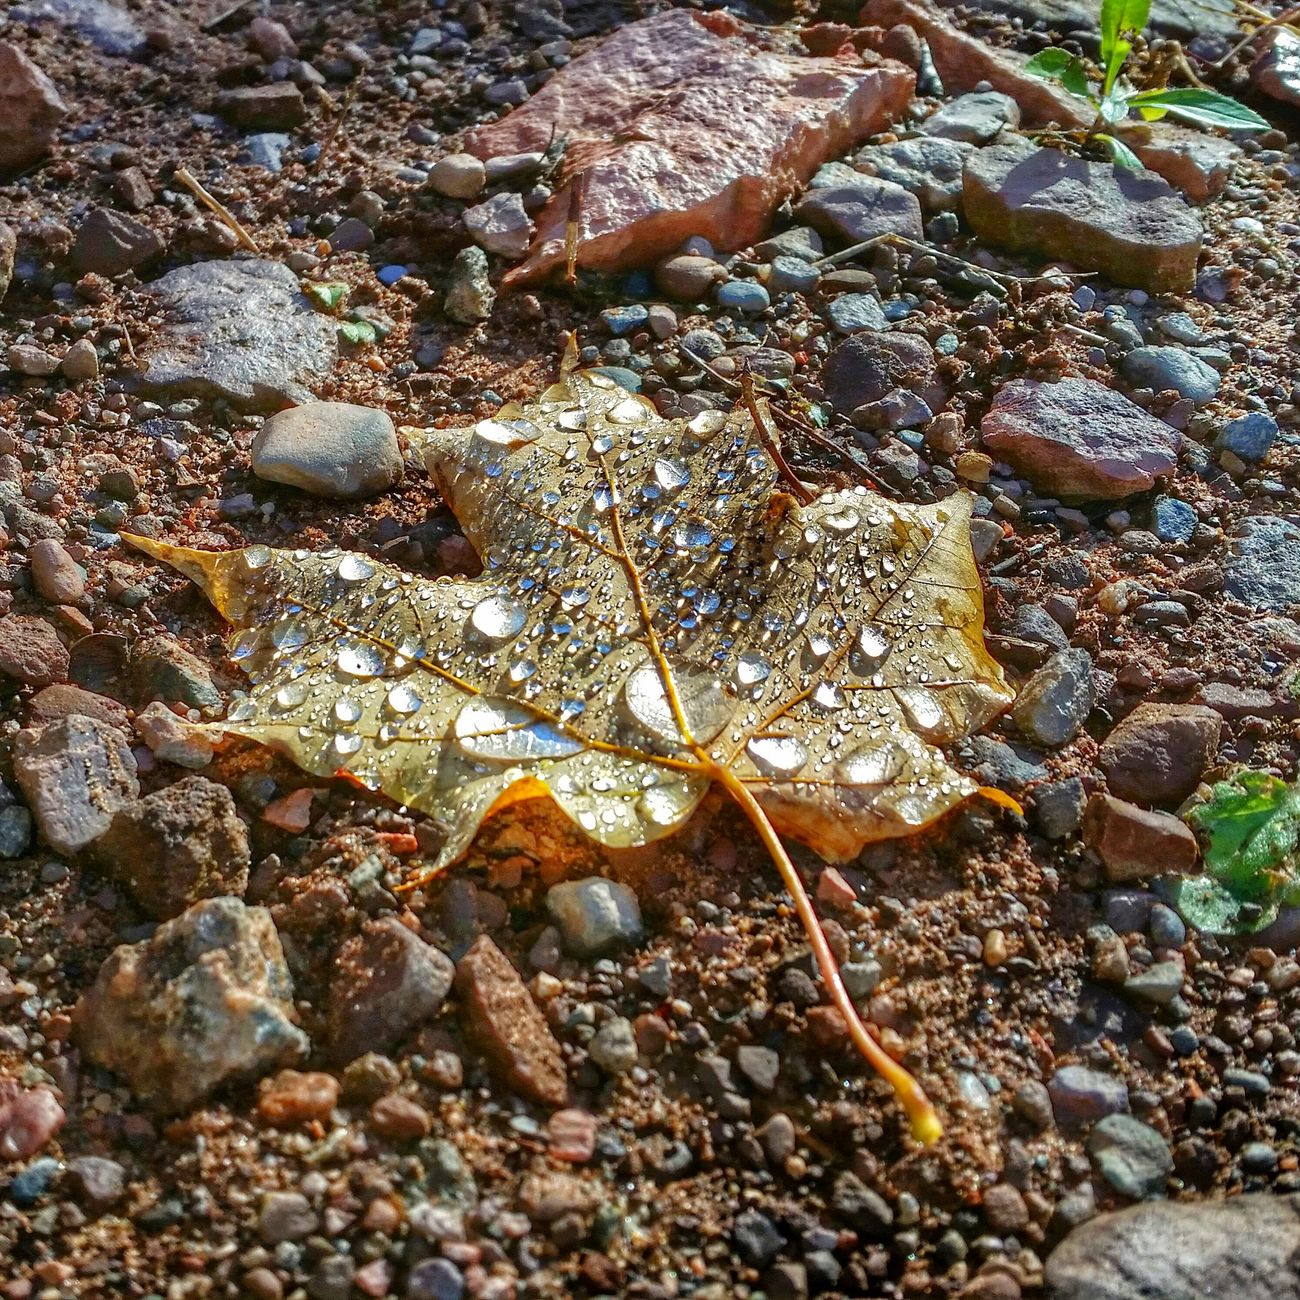 Early morning autumn walk. Mapleleaf Autumn Leaves Watet Droplets